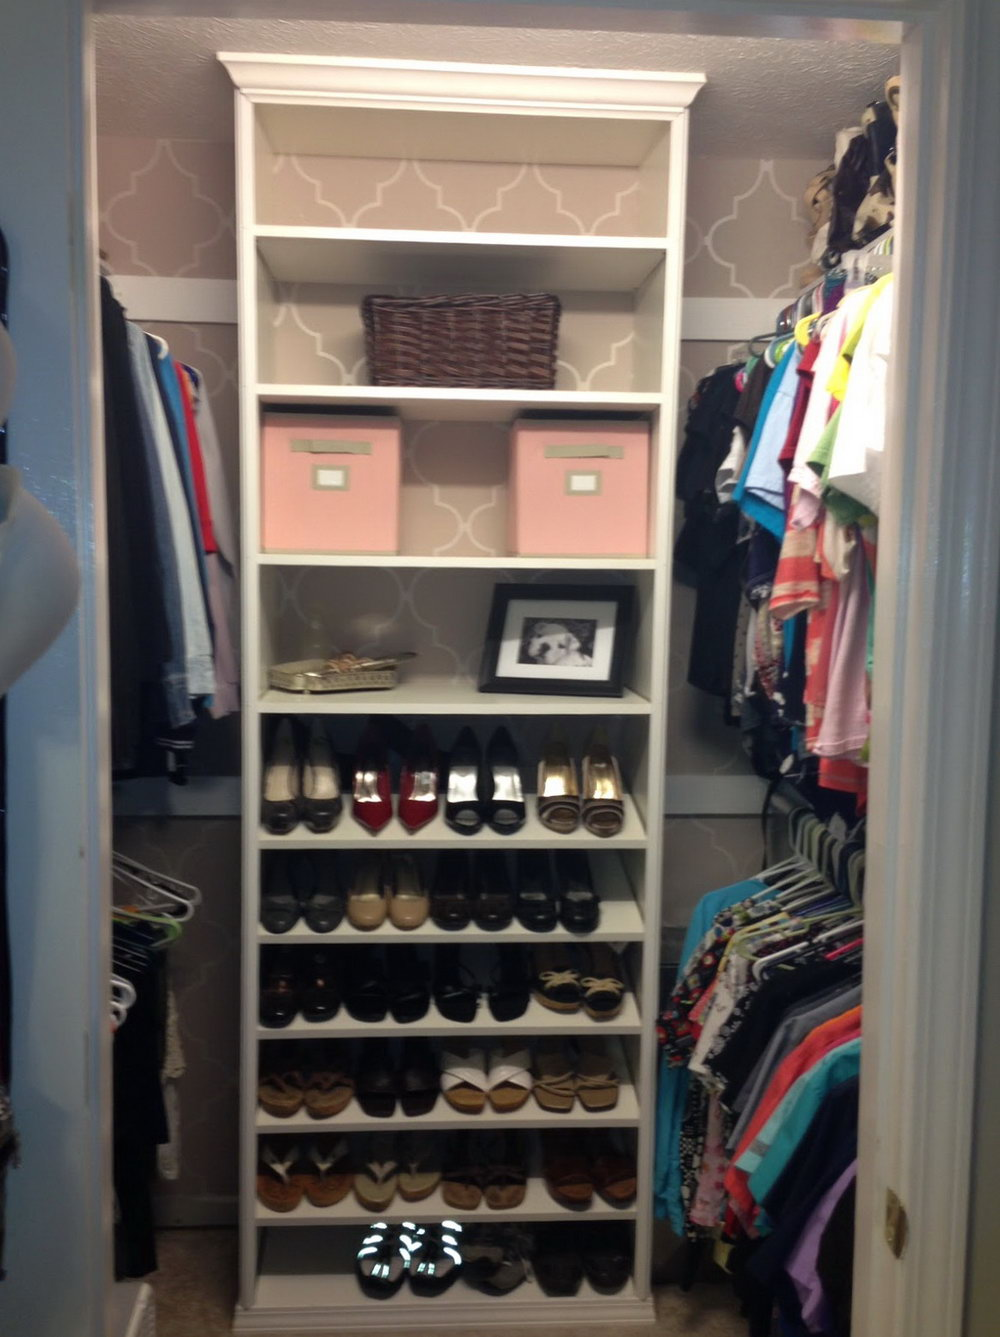 How To Organise Closet Space